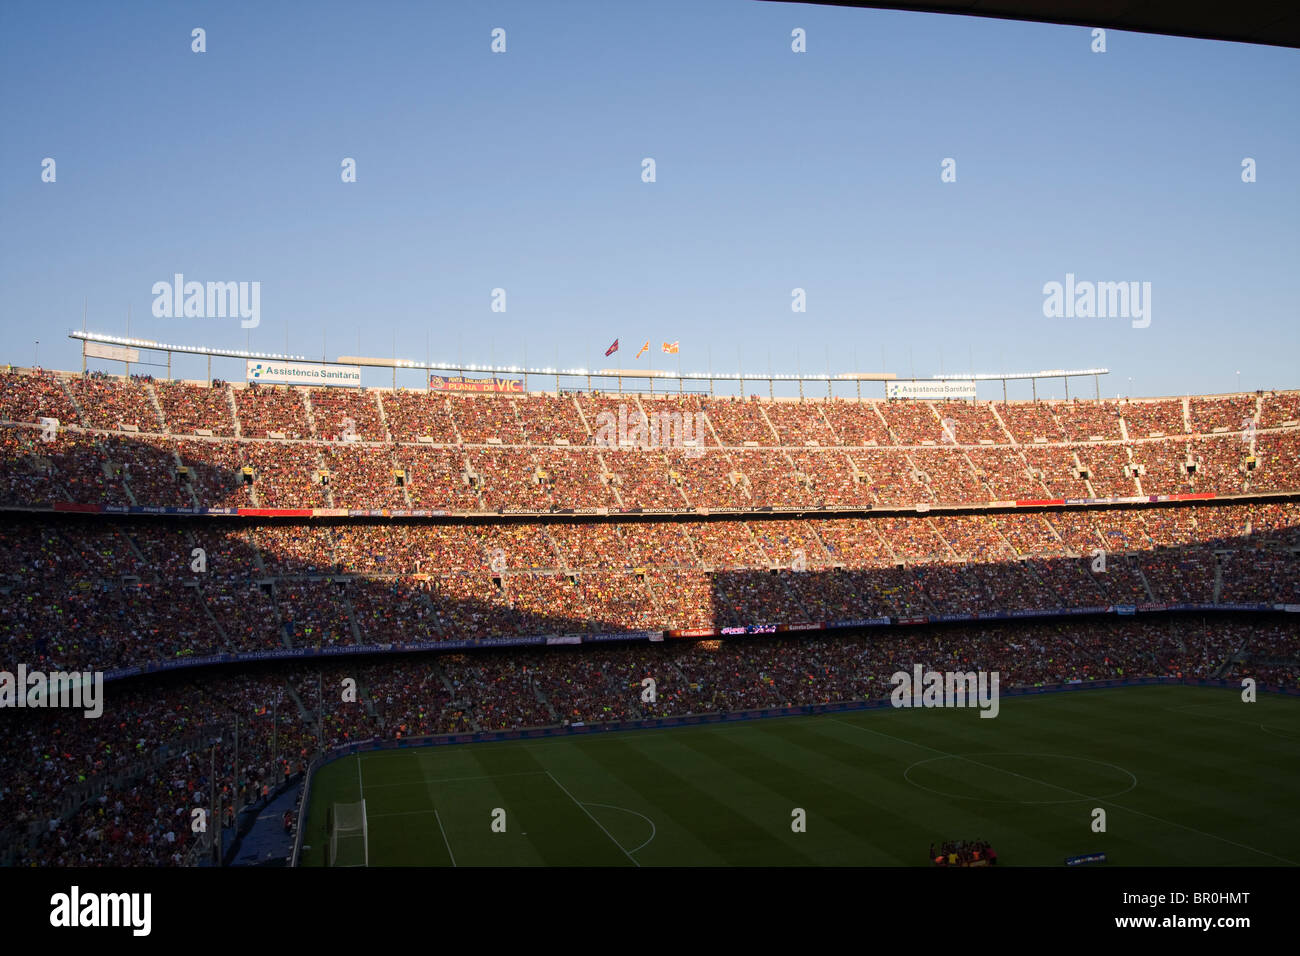 Camp Nou stadium in Barcelona prior to the 2010 Joan Gamper trophy match against AC Milan - Stock Image